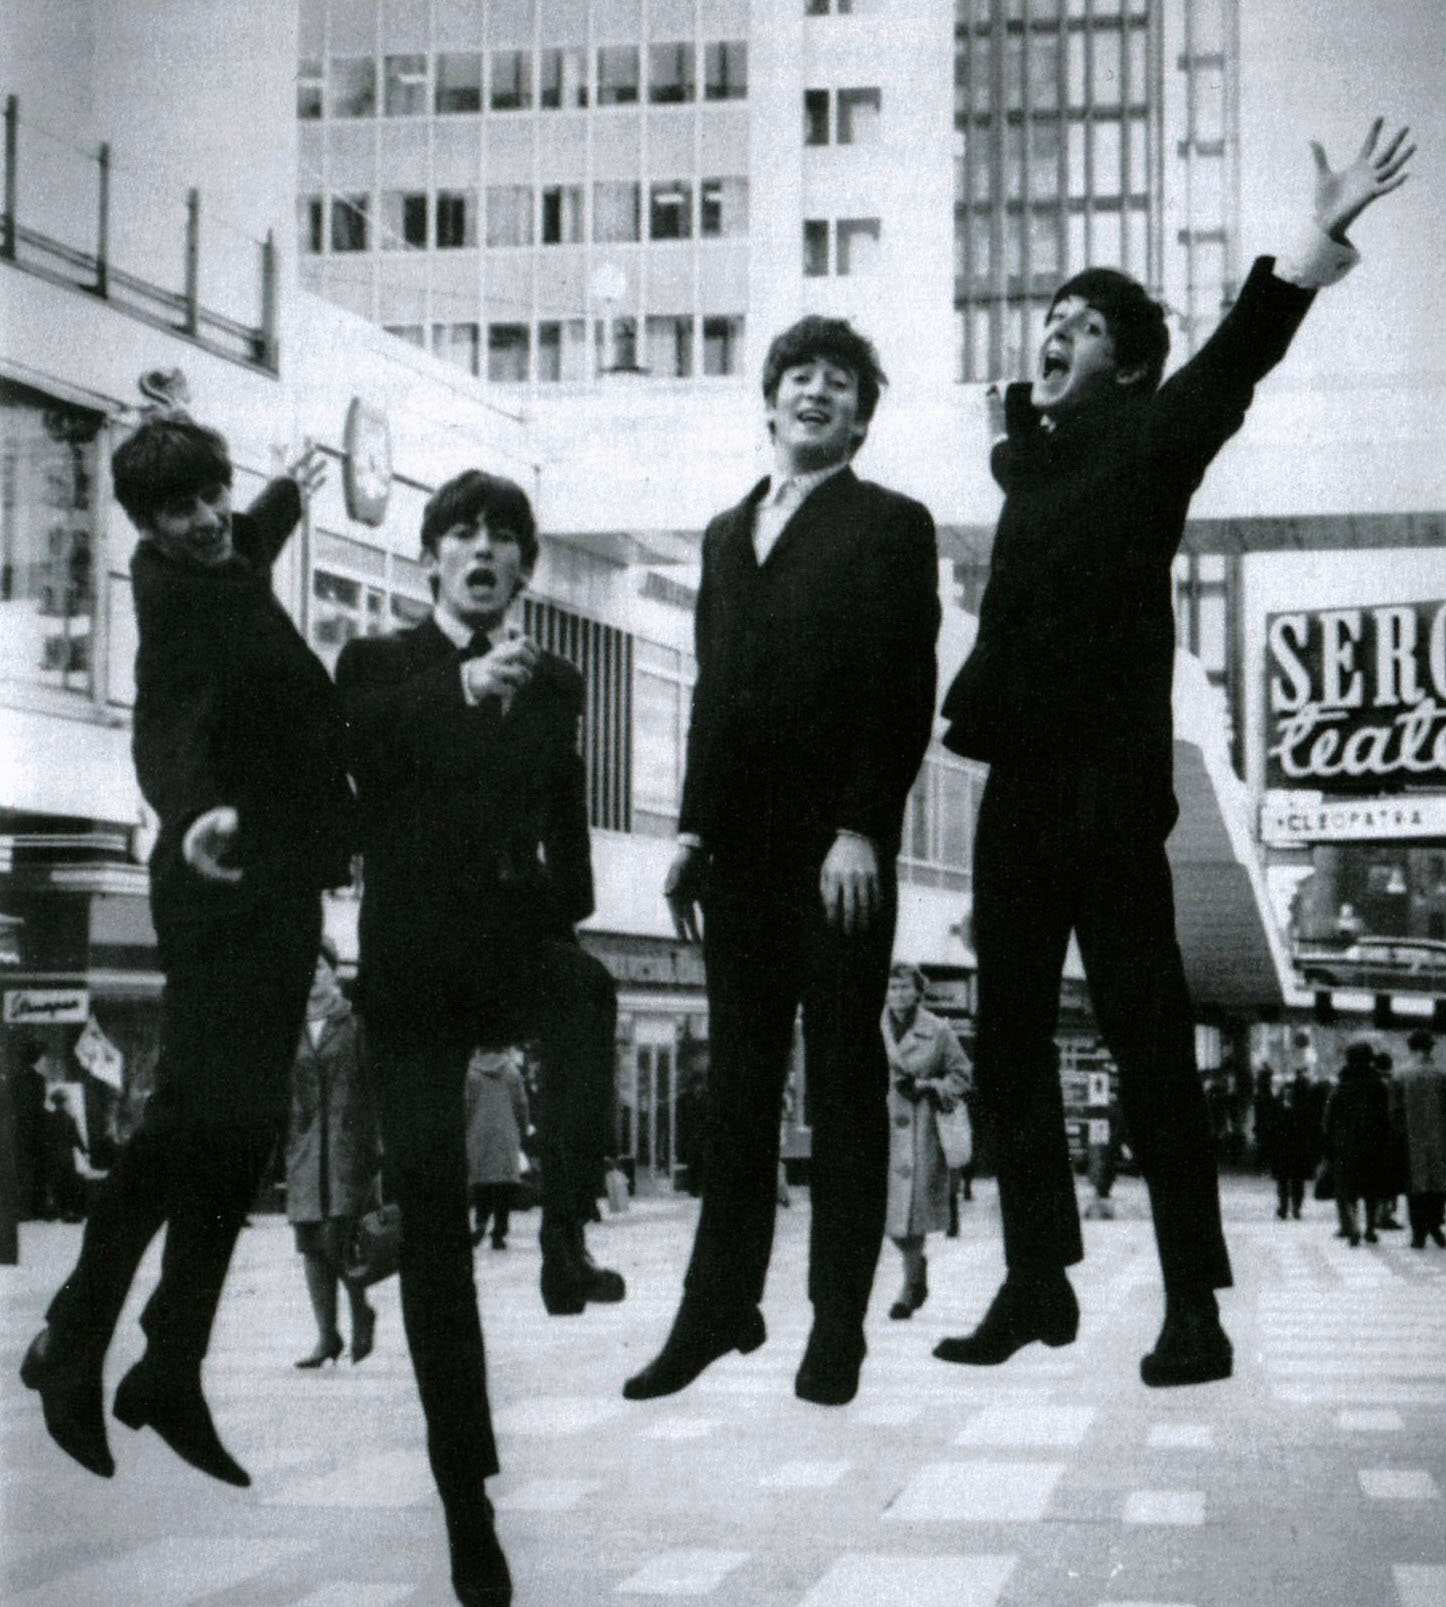 The arrival of the Beatles in the US during 1964, and particularly their appearance on television's The Ed Sullivan Show, marked the beginning of the British invasion in the history of music, in which a large number of rock and pop music acts from the United Kingdom gained enormous popularity in the US The Beatles i Hotorgscity 1963.jpg